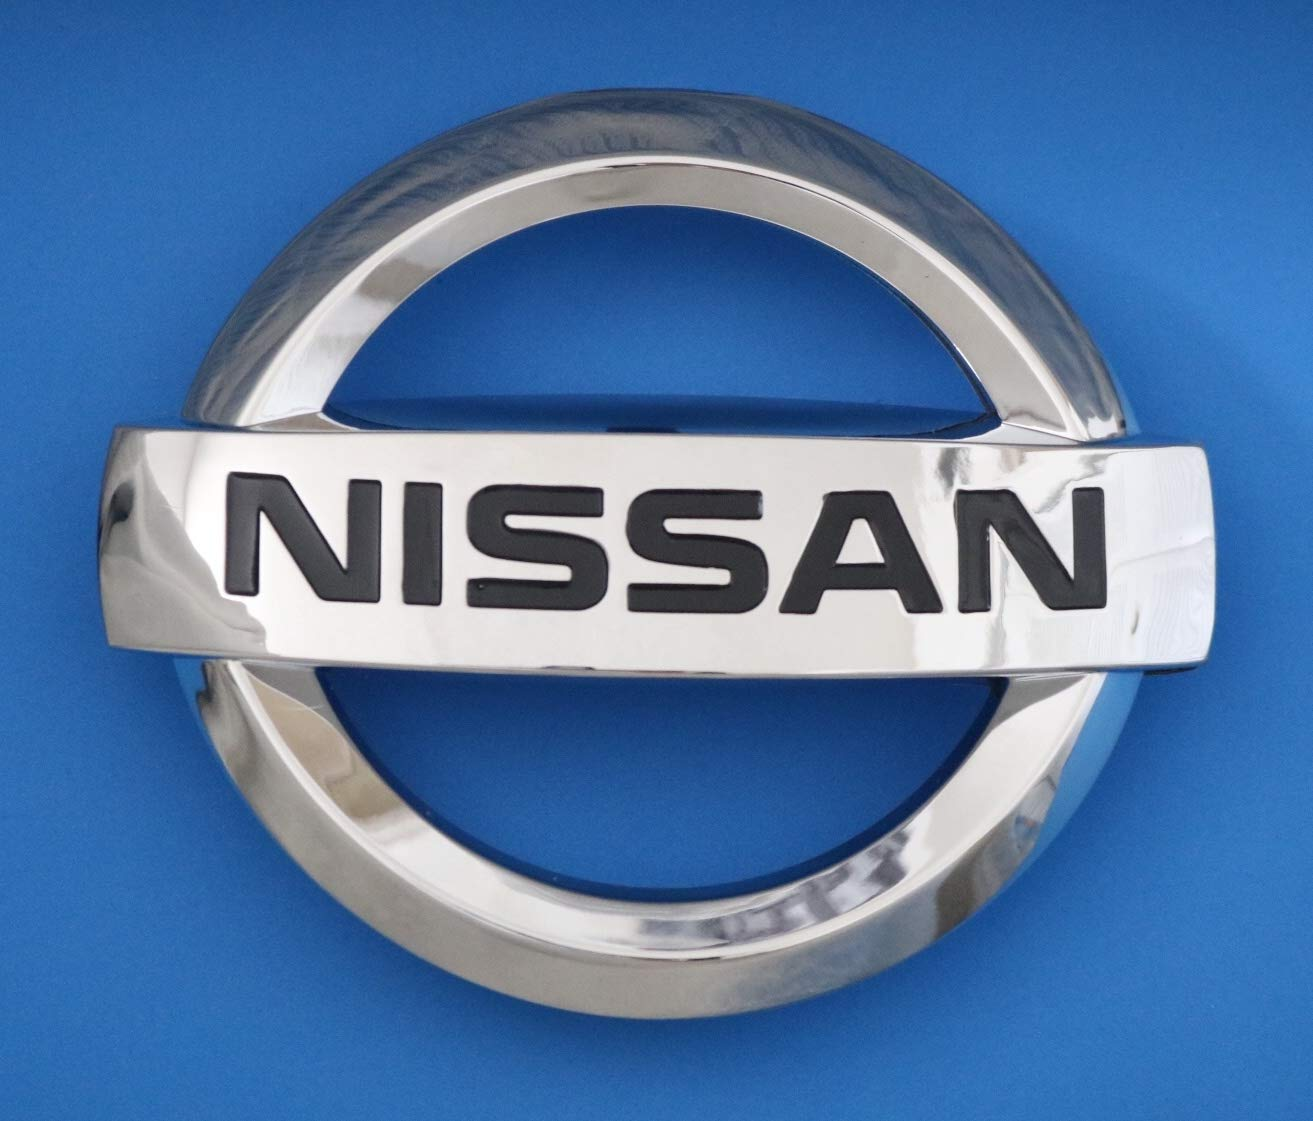 2007-2012 FRONT GRILL RADIATOR EMBLEM FOR NISSAN ALTIMA/AFTERMARKET PRODUCT CHINA